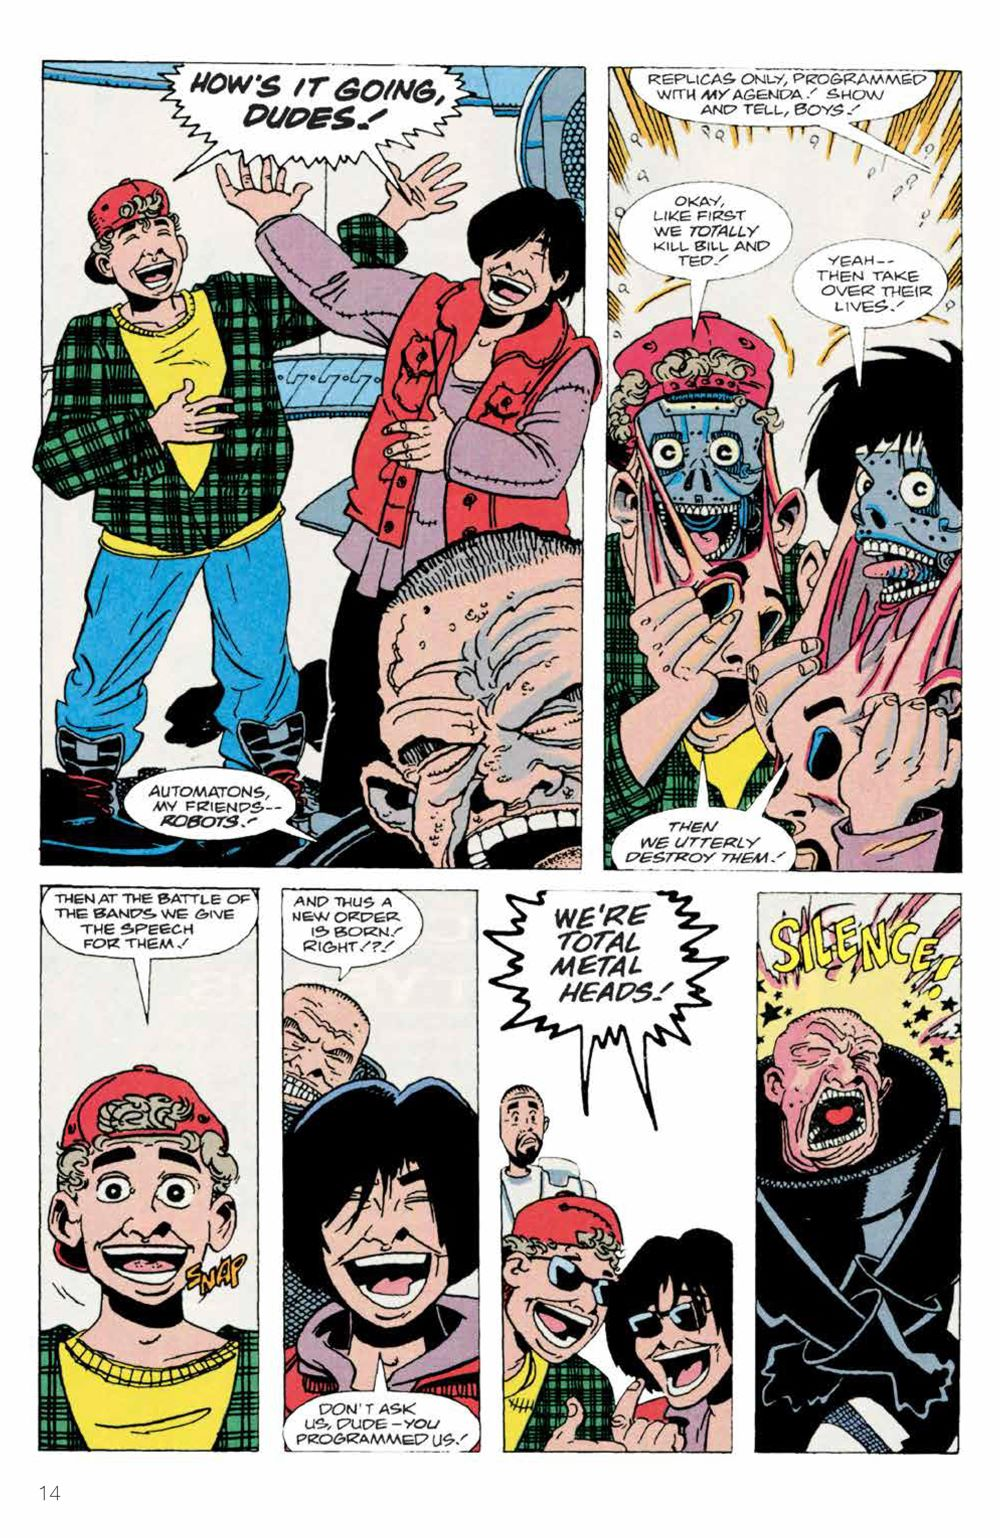 BillTed_Archive_SC_PRESS_16-1 ComicList Previews: BILL AND TED'S EXCELLENT COMIC BOOK ARCHIVE TP